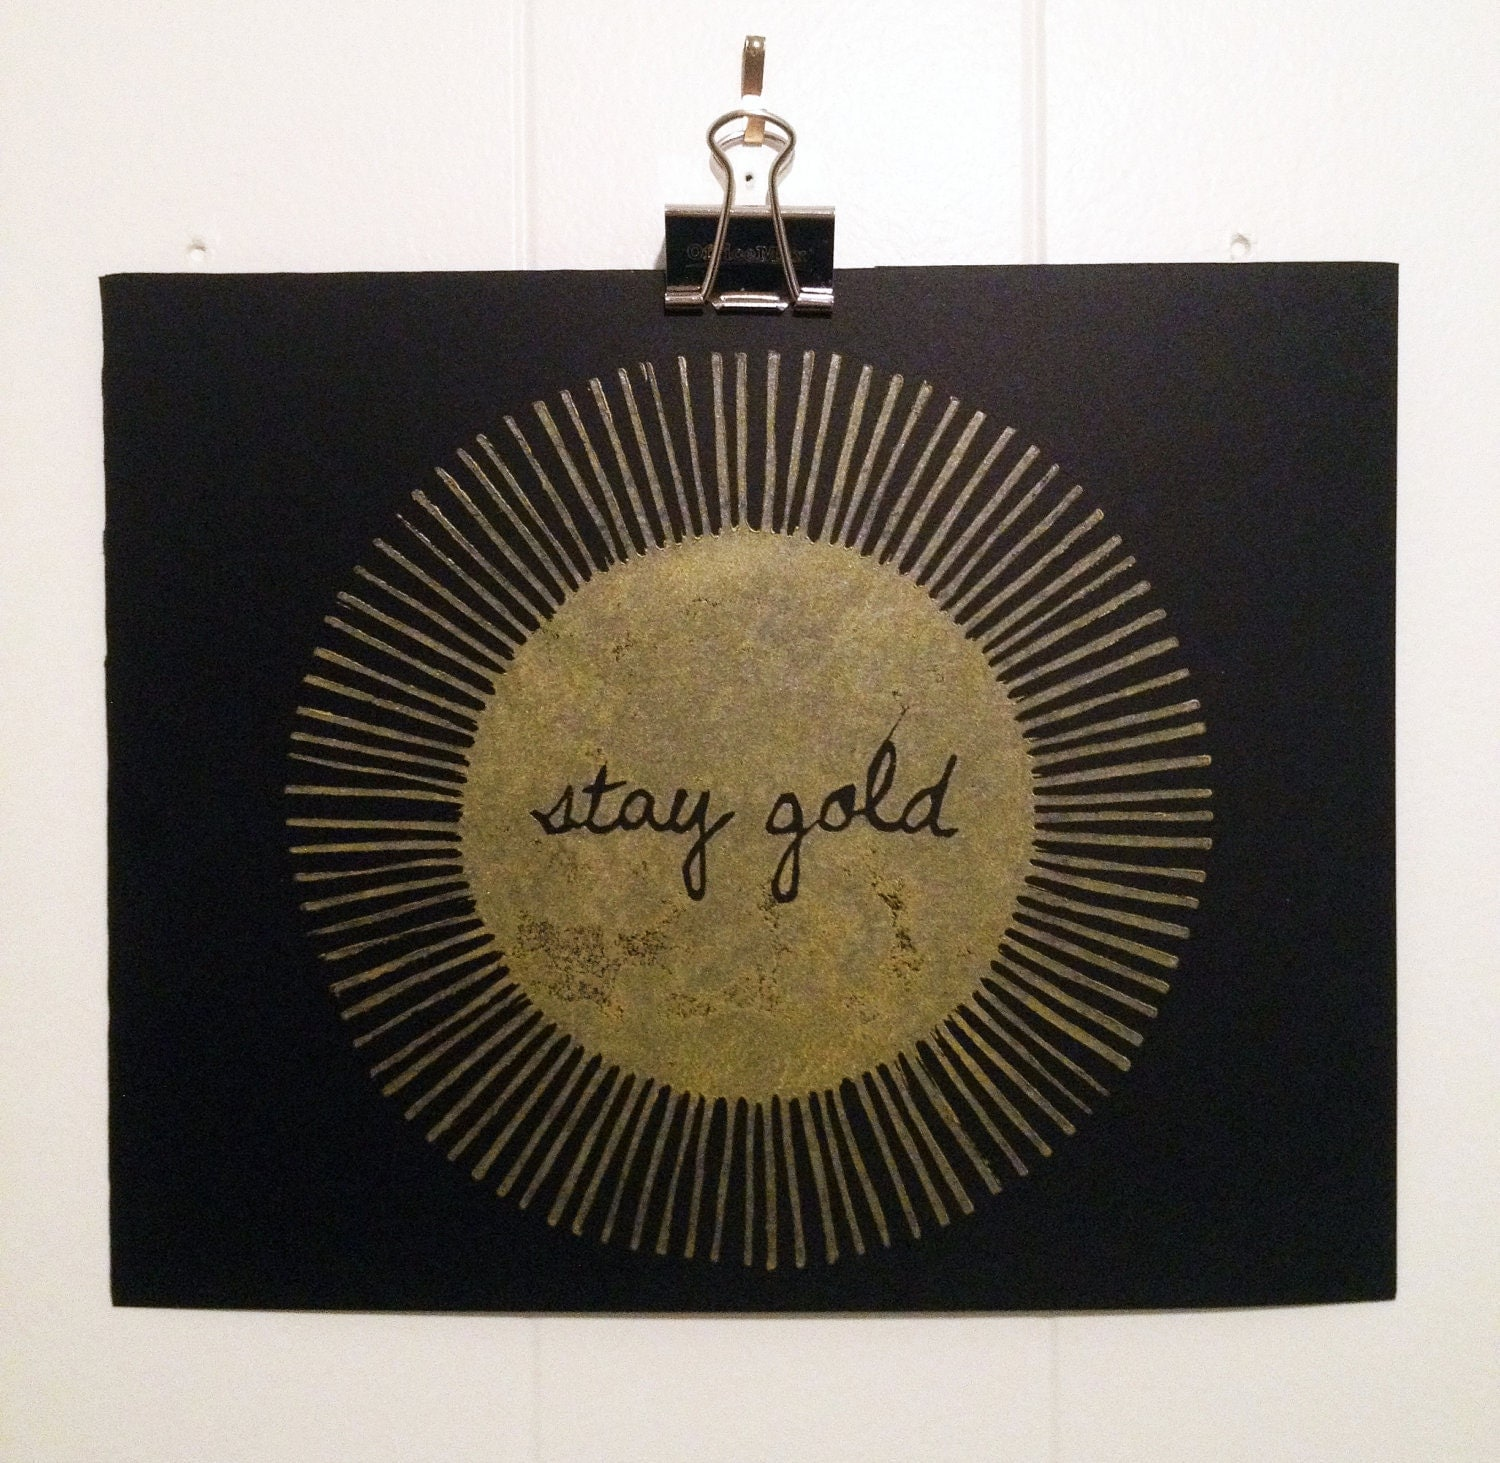 "Stay Gold Print 8"" x 10"" Black and Gold"